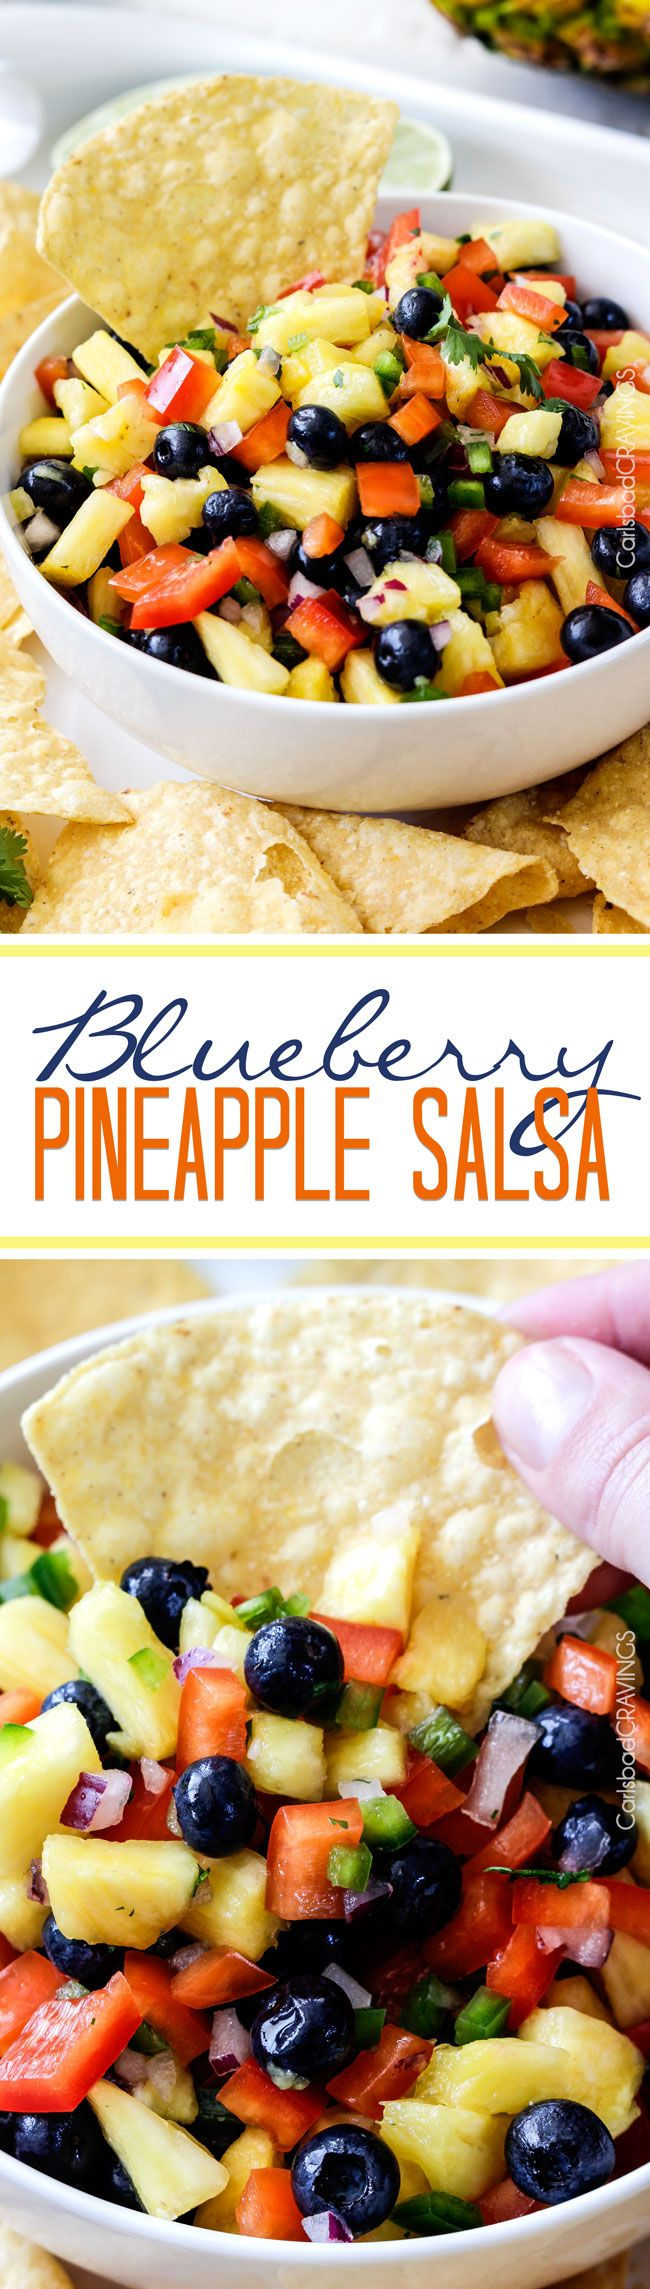 Refreshing sweet, bright Blueberry Pineapple Salsa is addictingly delicious with chips, on chicken, fish, tacos or just a spoon! This easy salsa makes everything better! via @carlsbadcraving